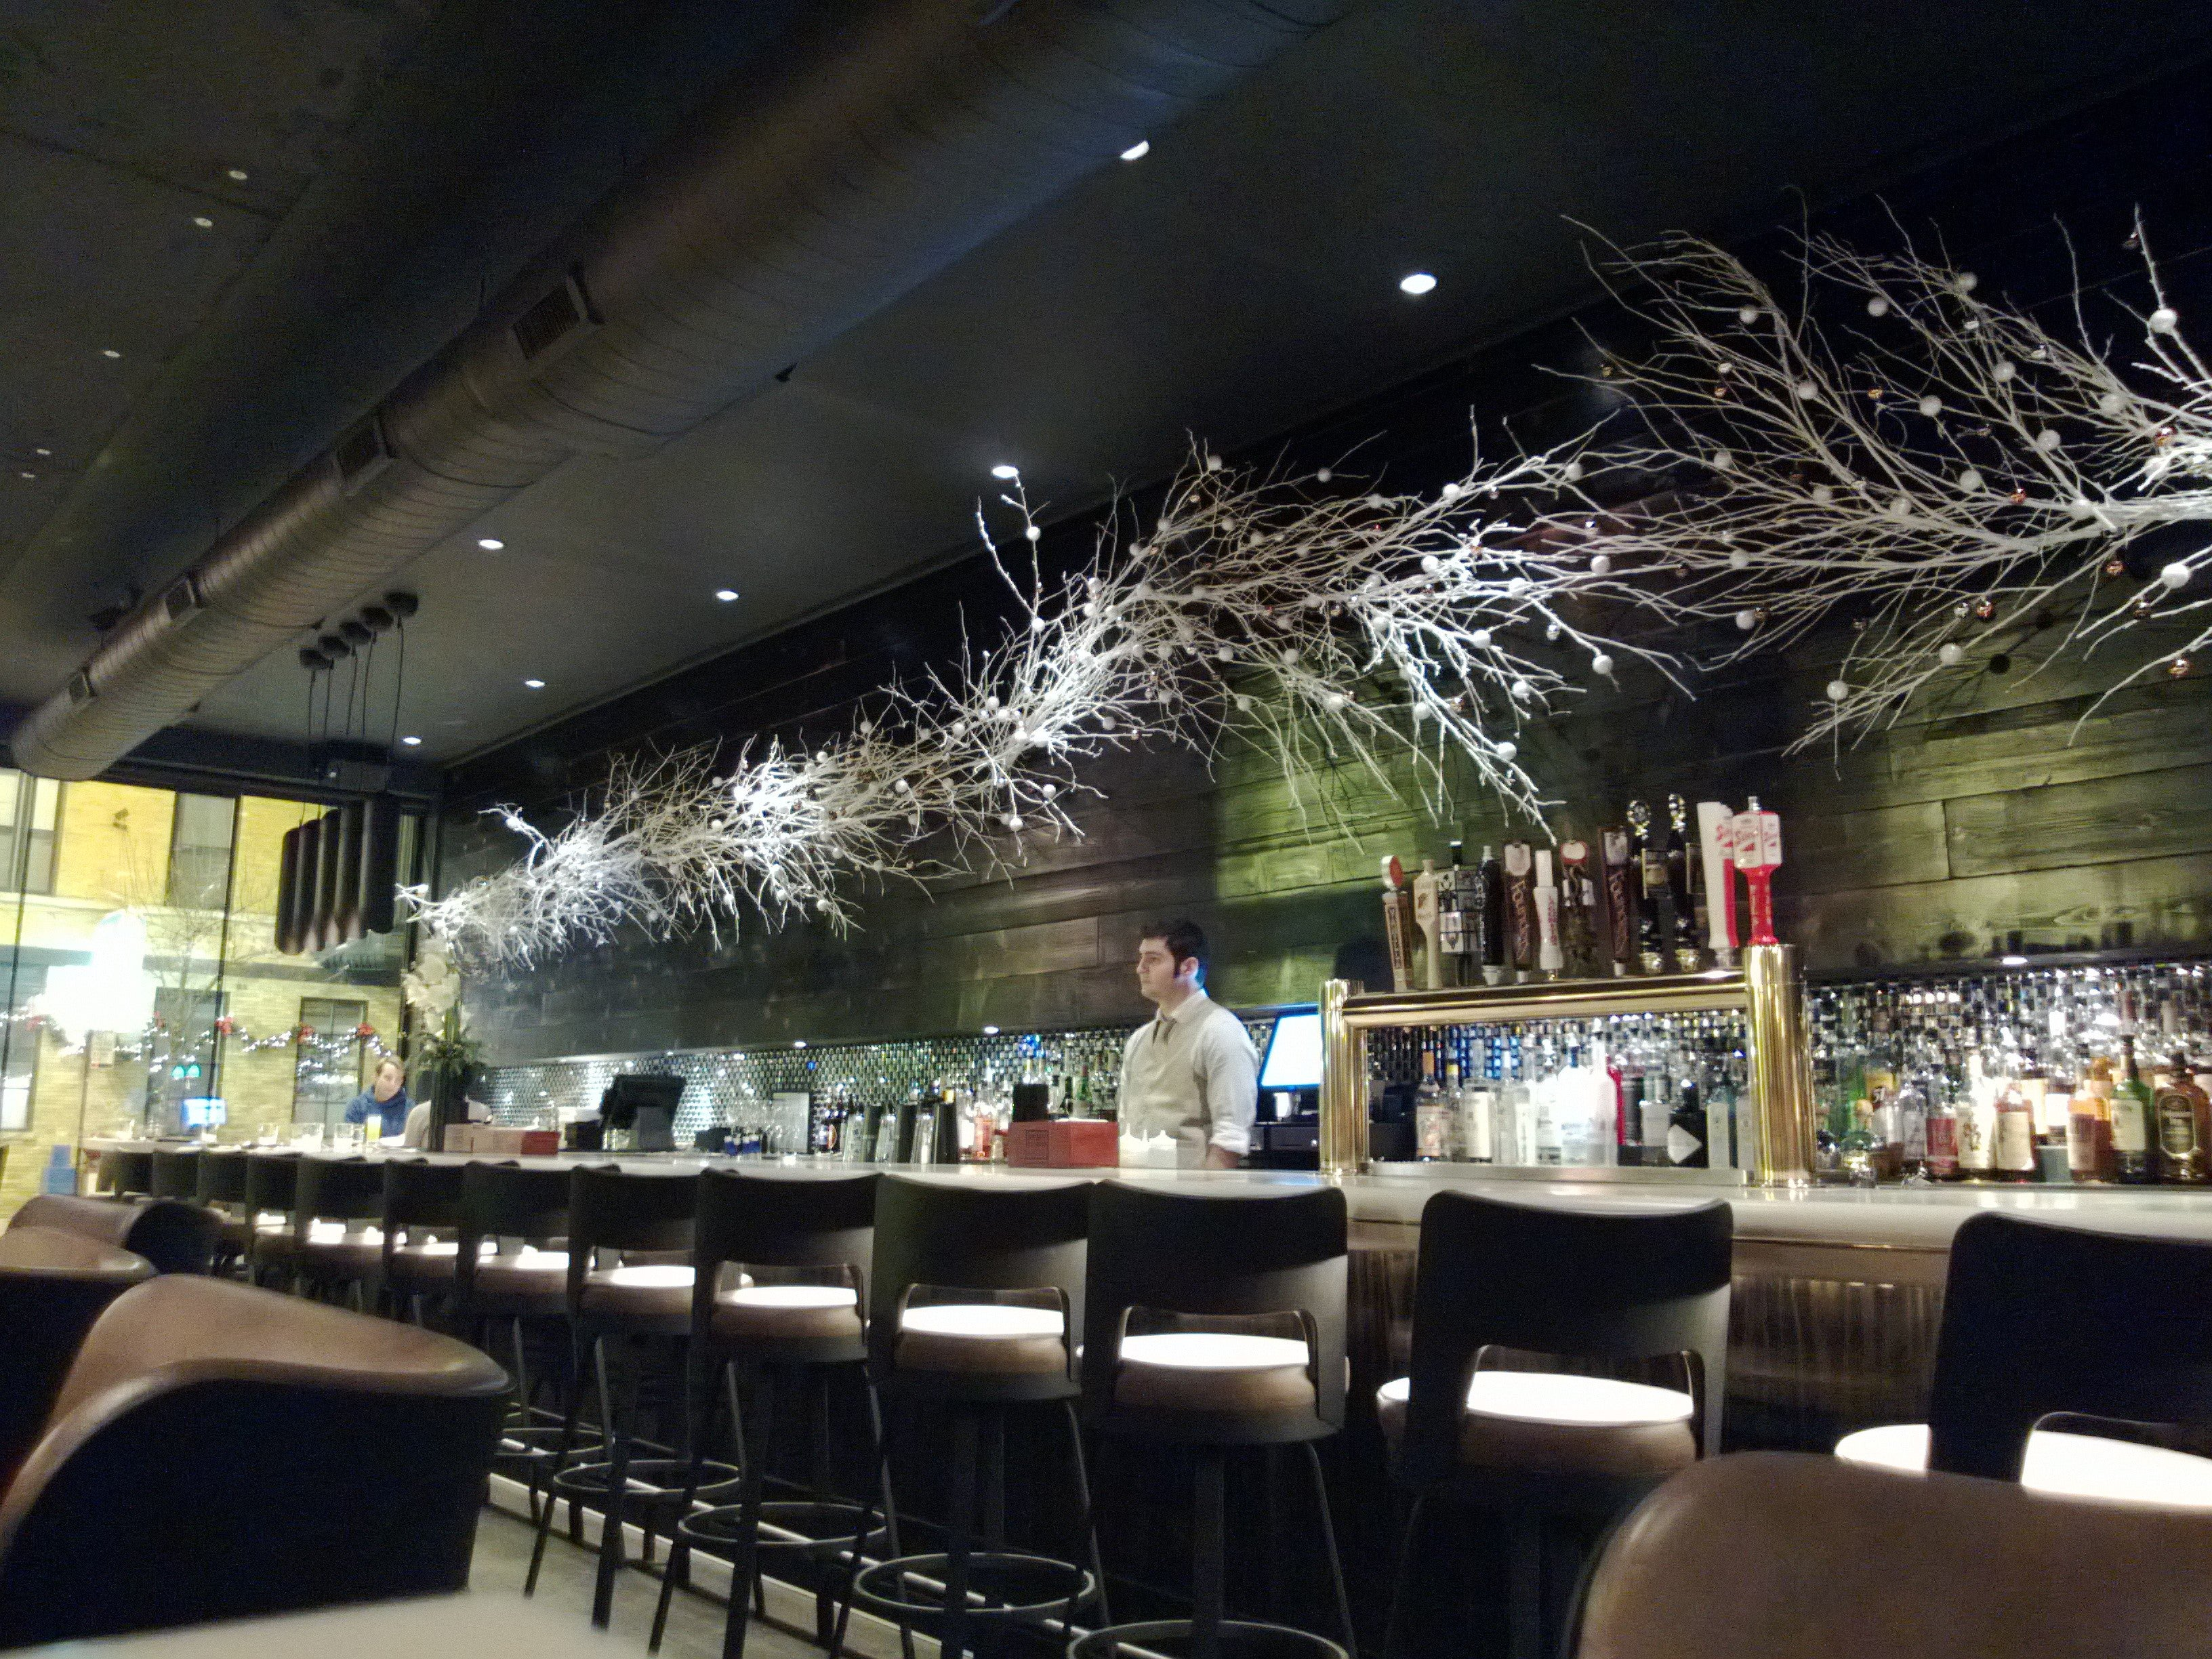 New american restaurant theater and bar in chicago we for American cuisine chicago